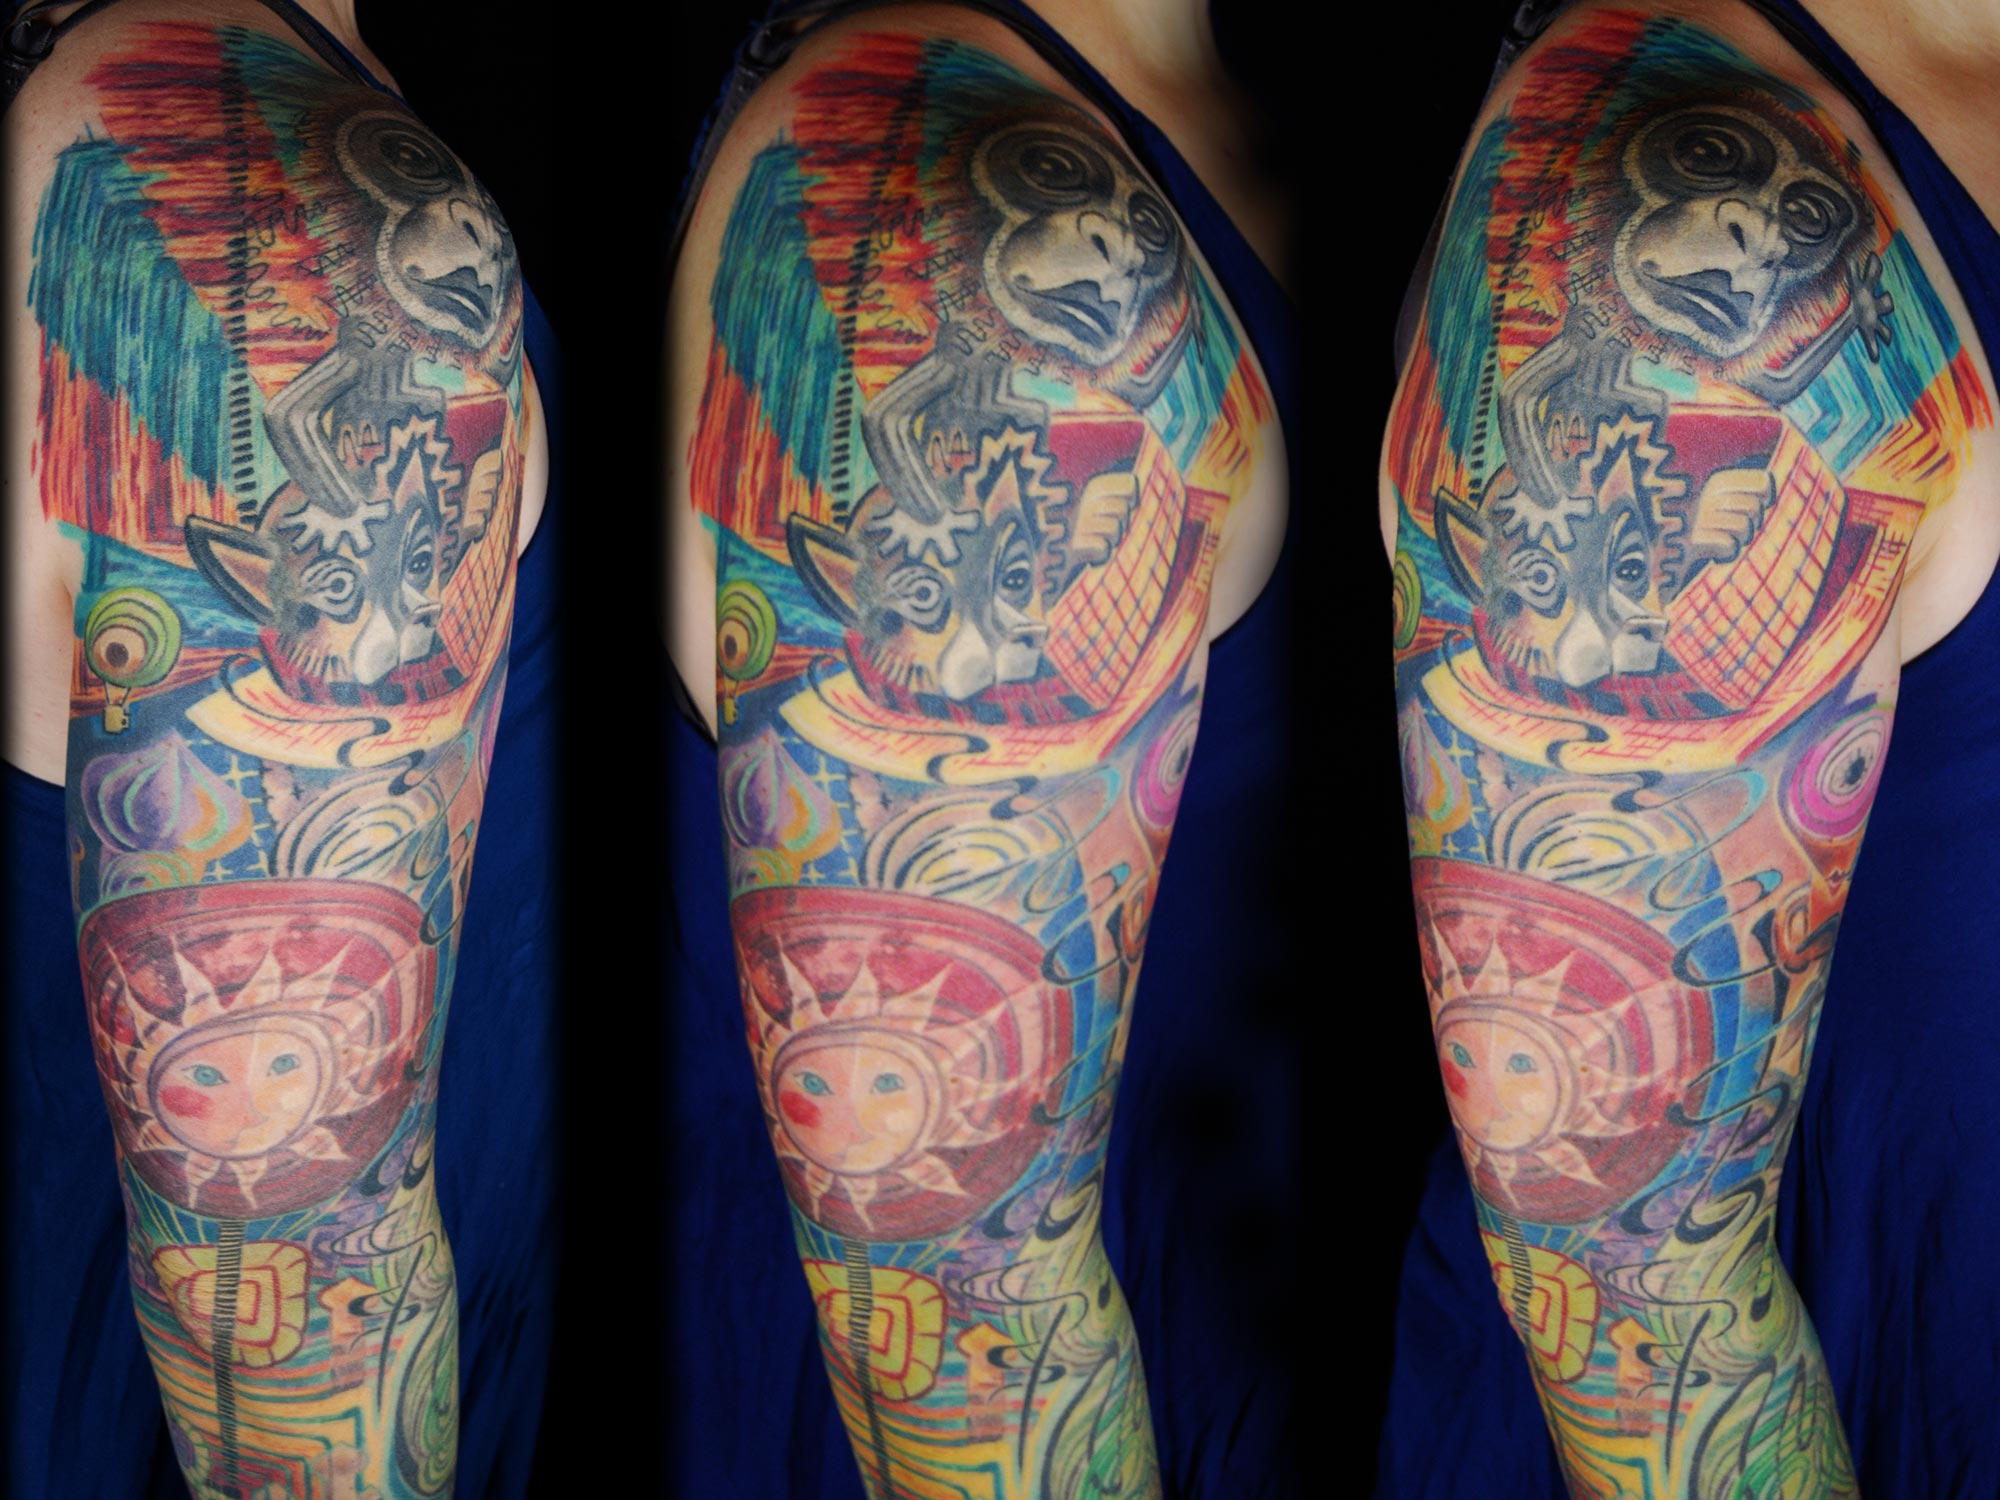 Hundertwasser vs Dali crazy tattoo Cover-up